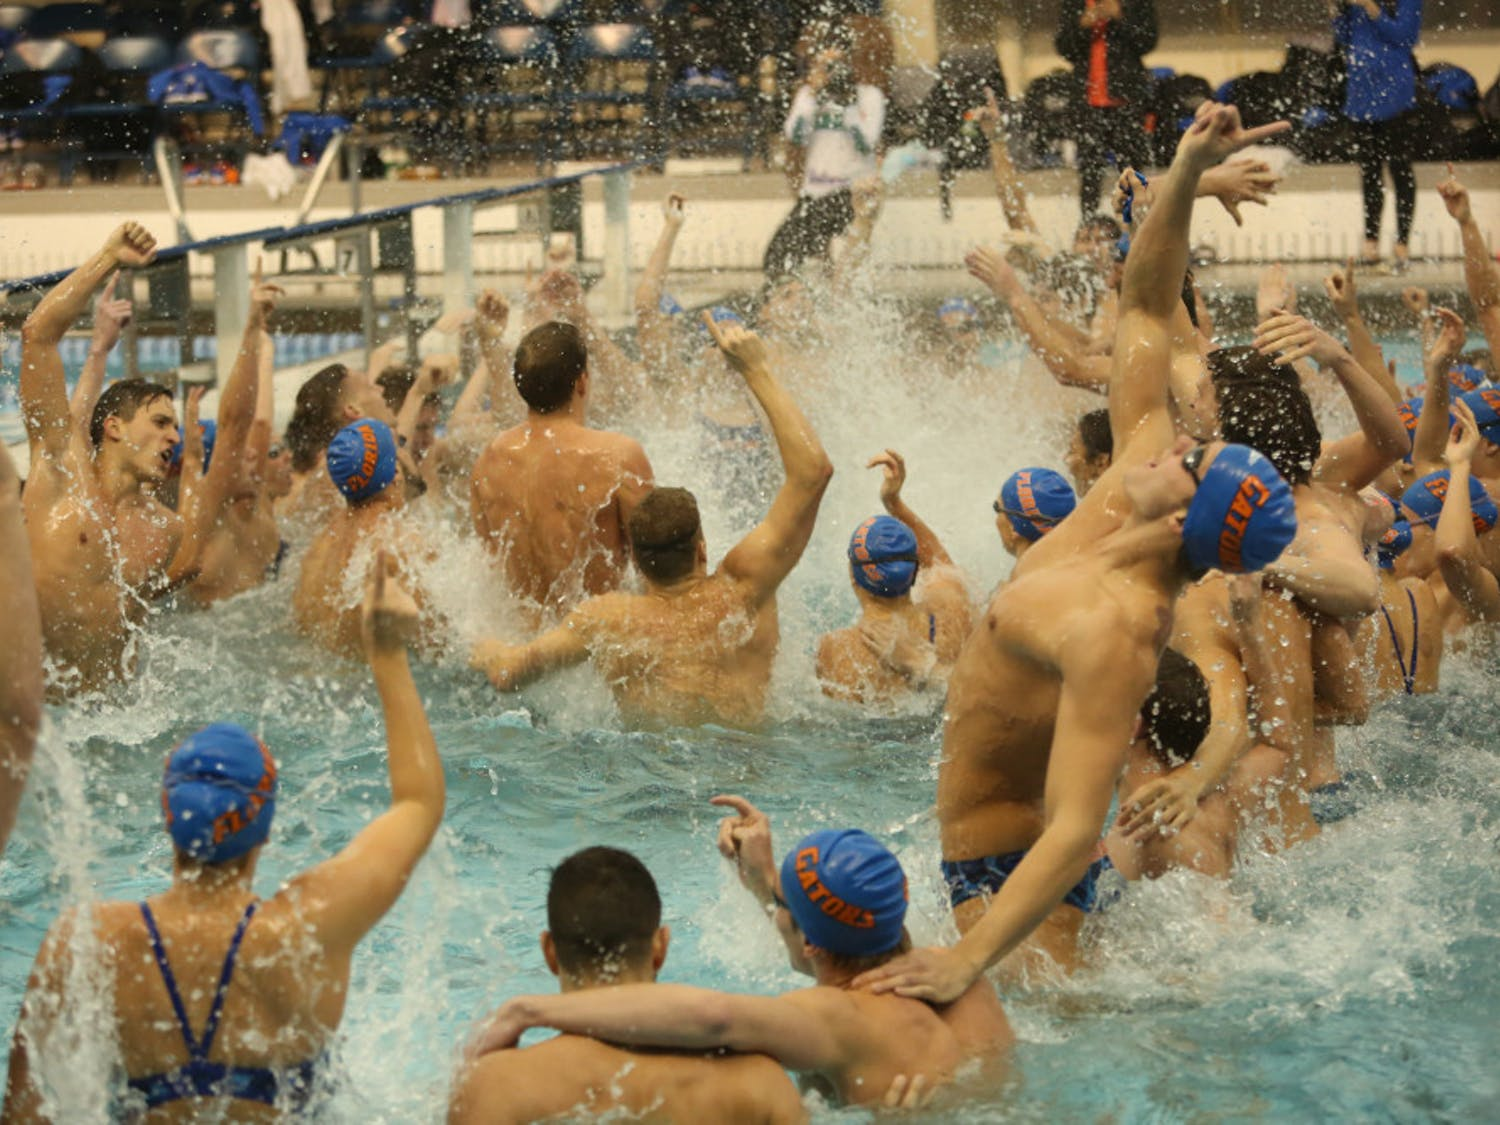 The Gators men's and women's swimming and diving teams begin SEC play against LSU in Baton Rouge, Louisiana, today. The meet was postponed due to Hurricane Michael.